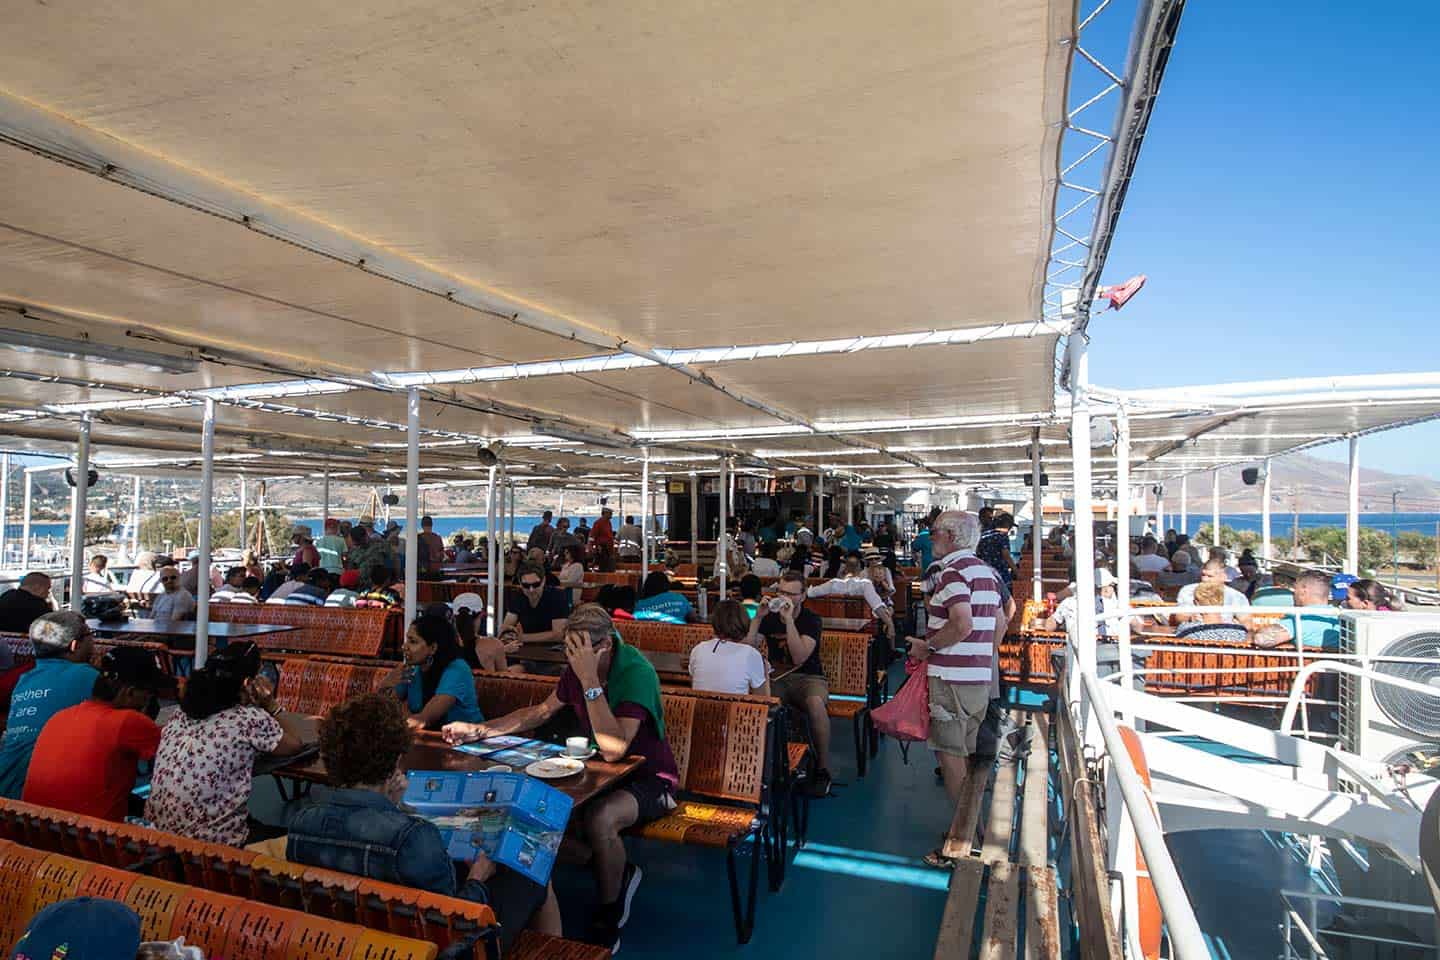 Image of passengers on board the ferry to Balos beach in Crete